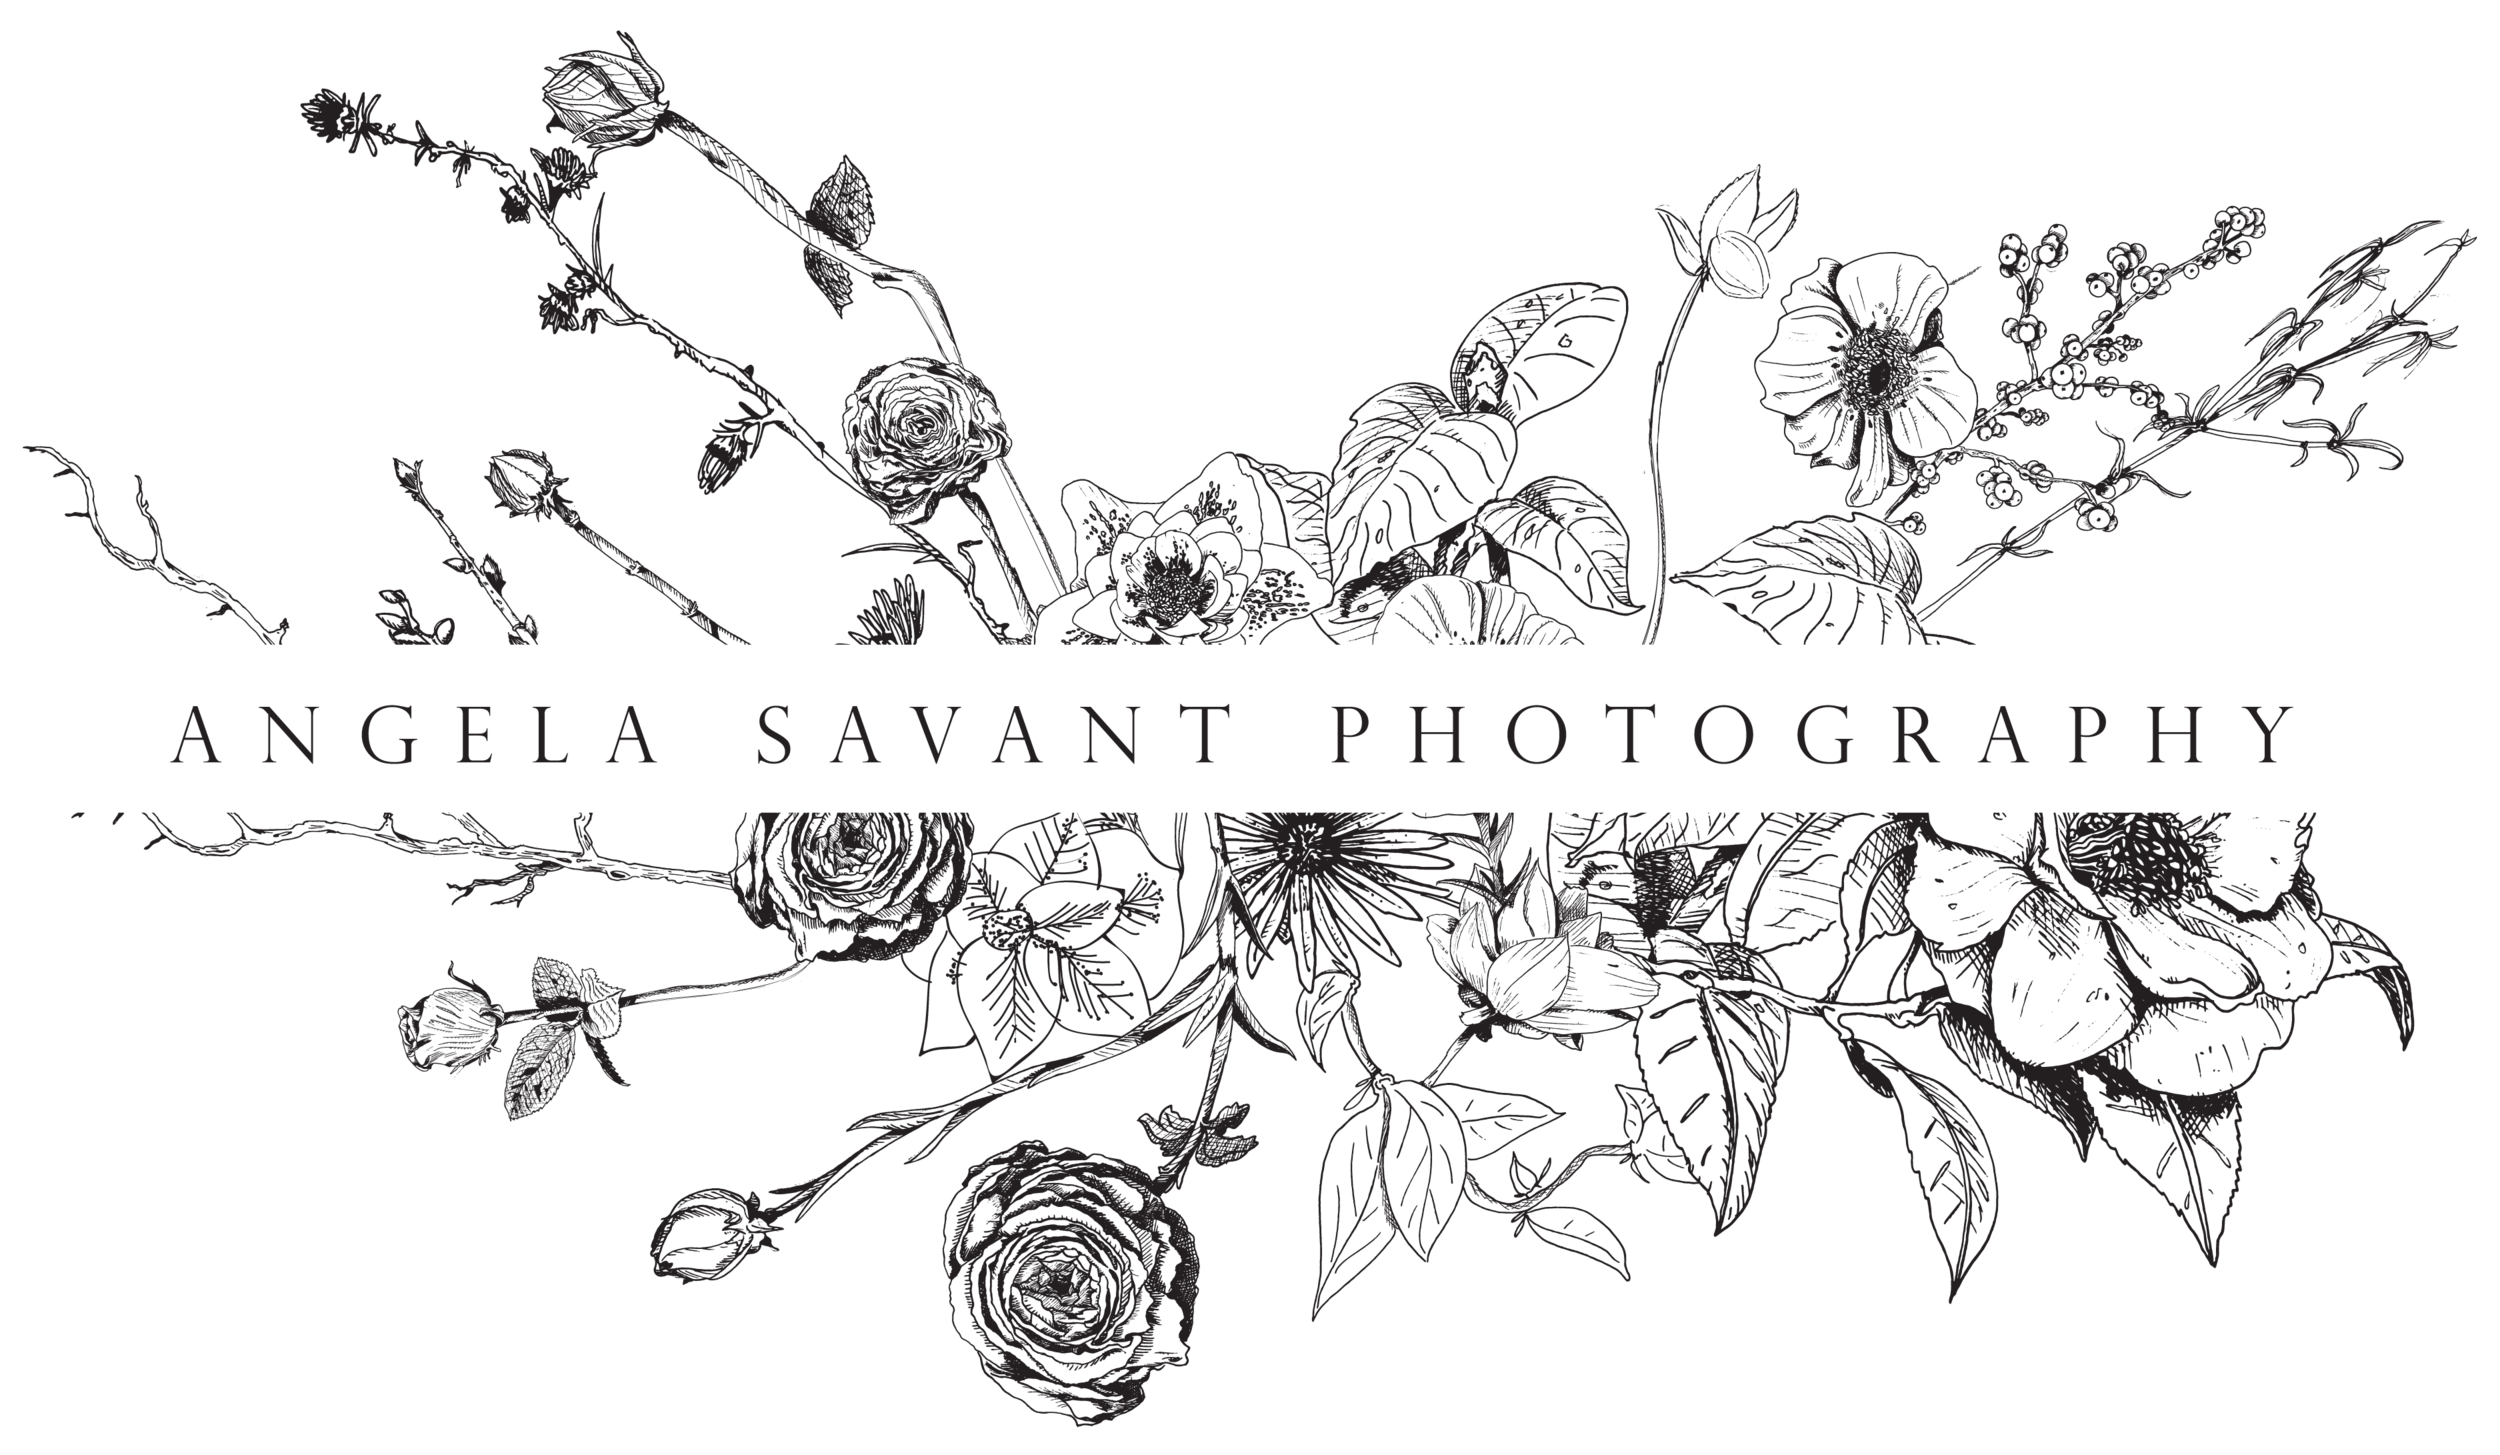 Angela Savant Photography - WM BLACK-01.png